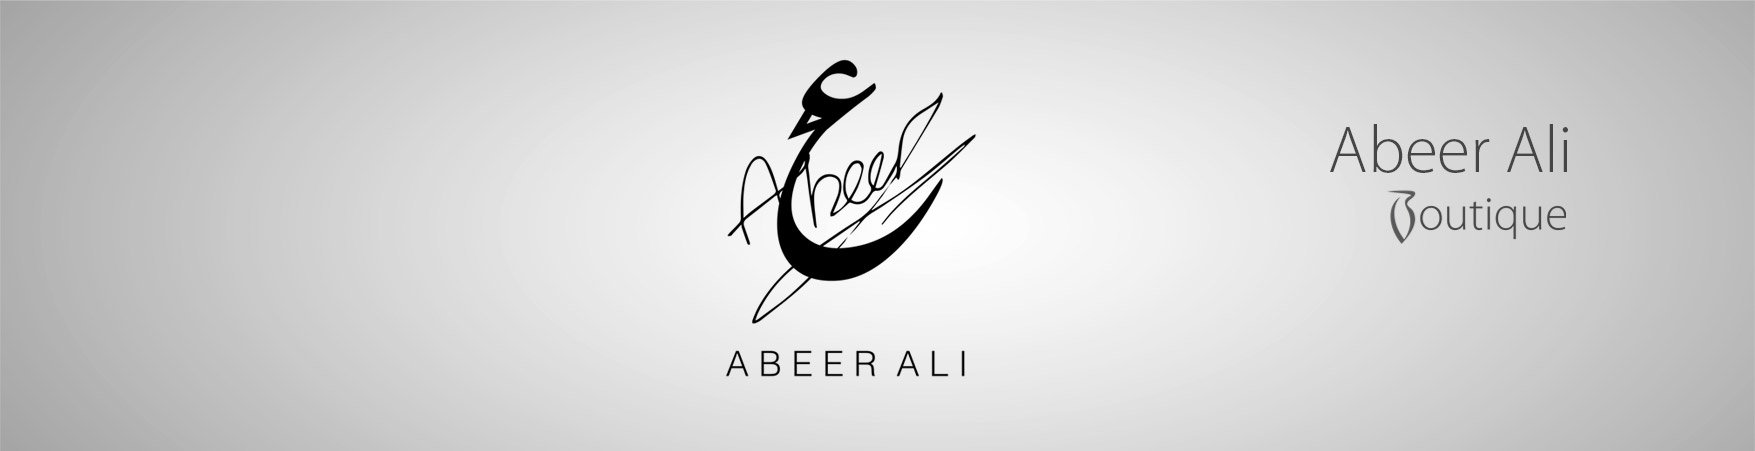 Abeer Ali Boutique